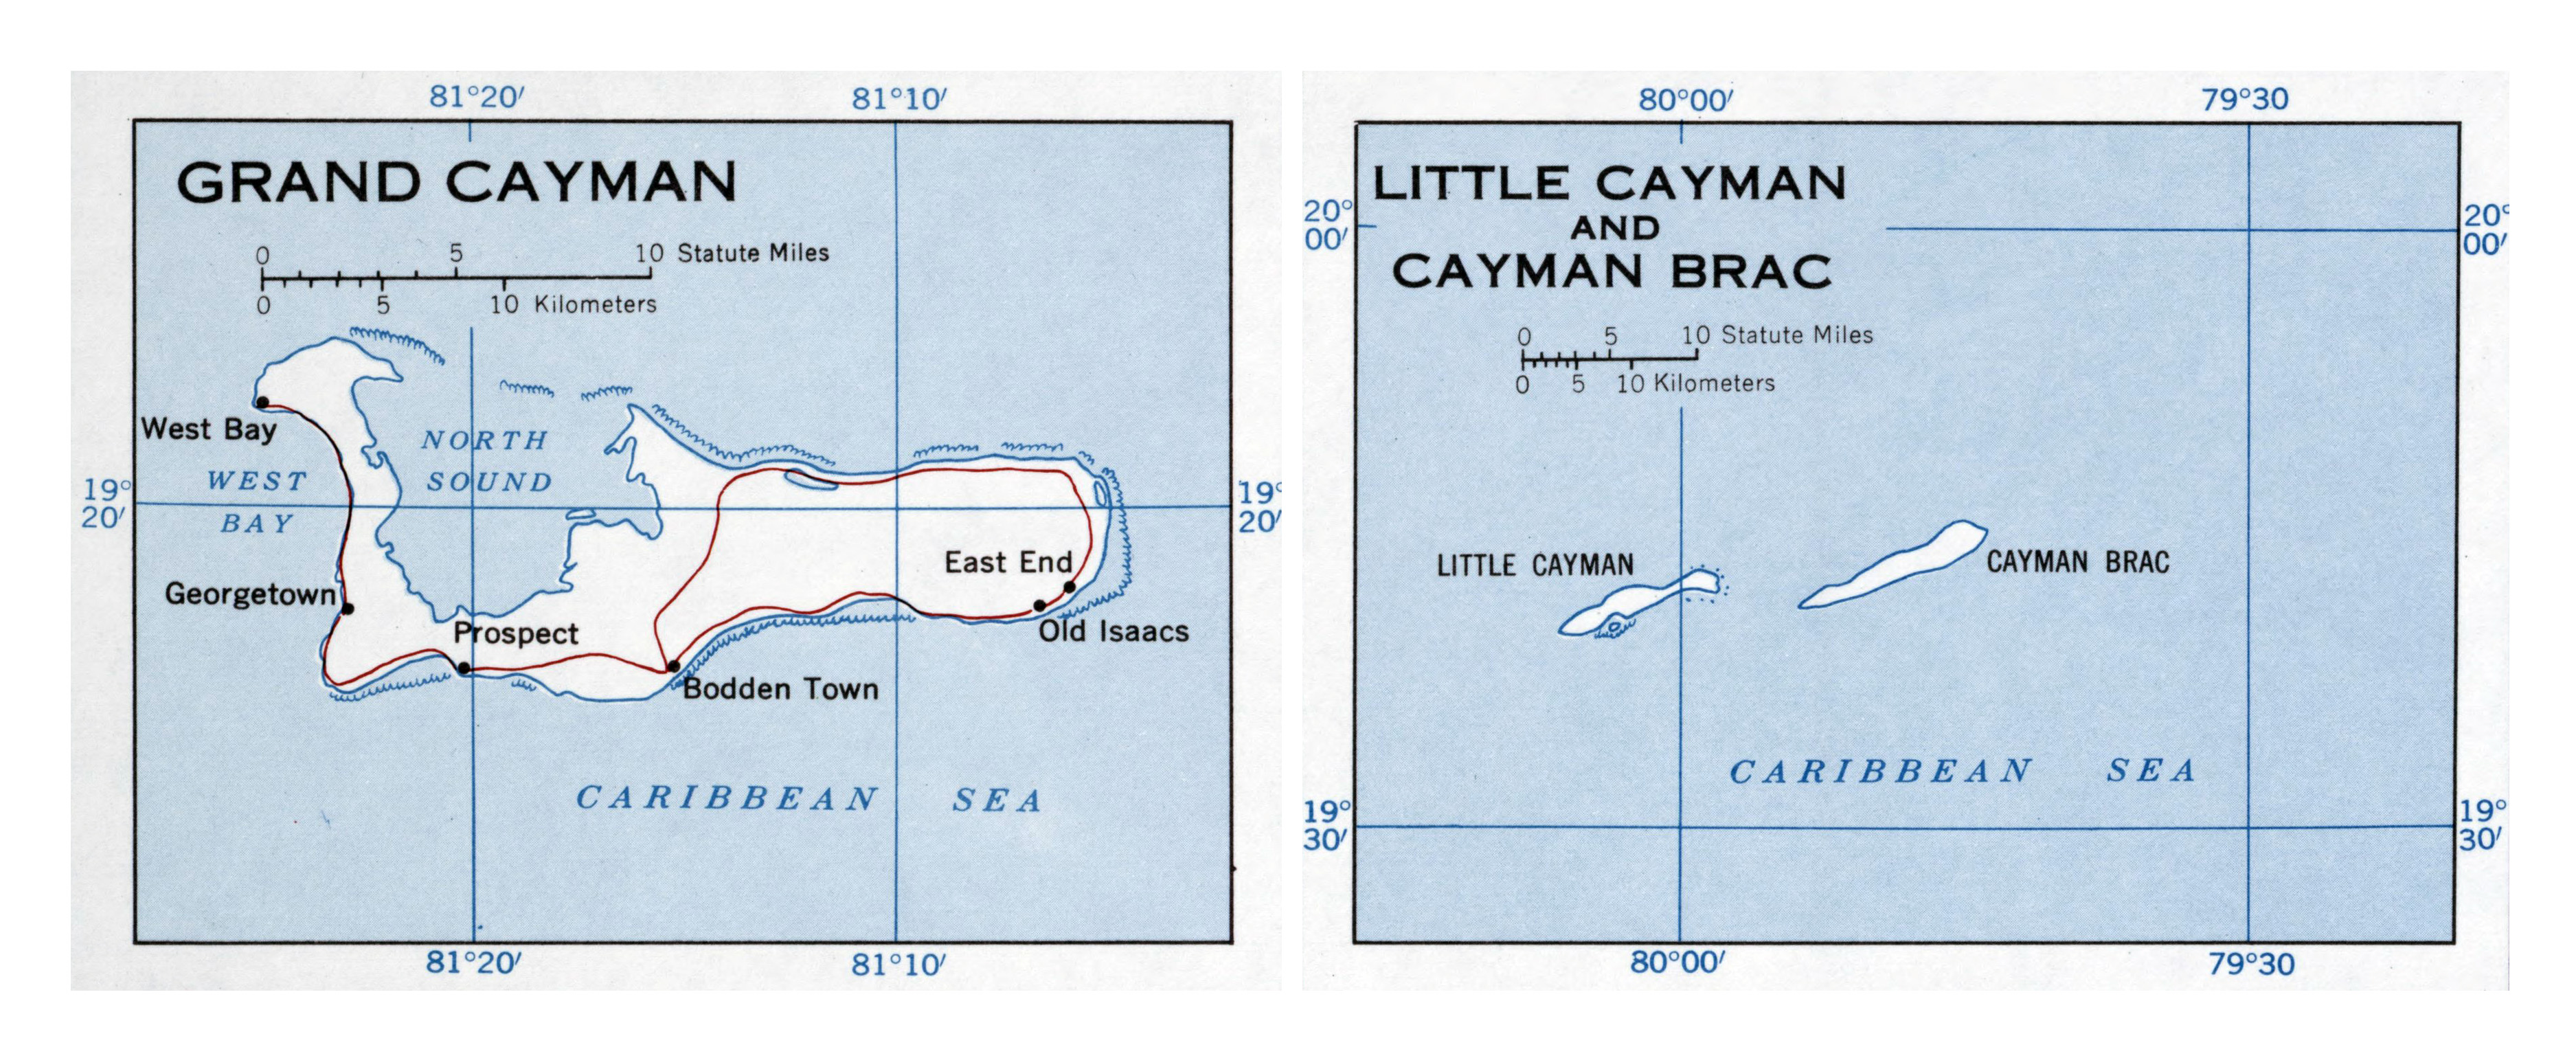 Large Detailed Map Of Cayman Islands With Roads And Cities - Cayman islands cities map